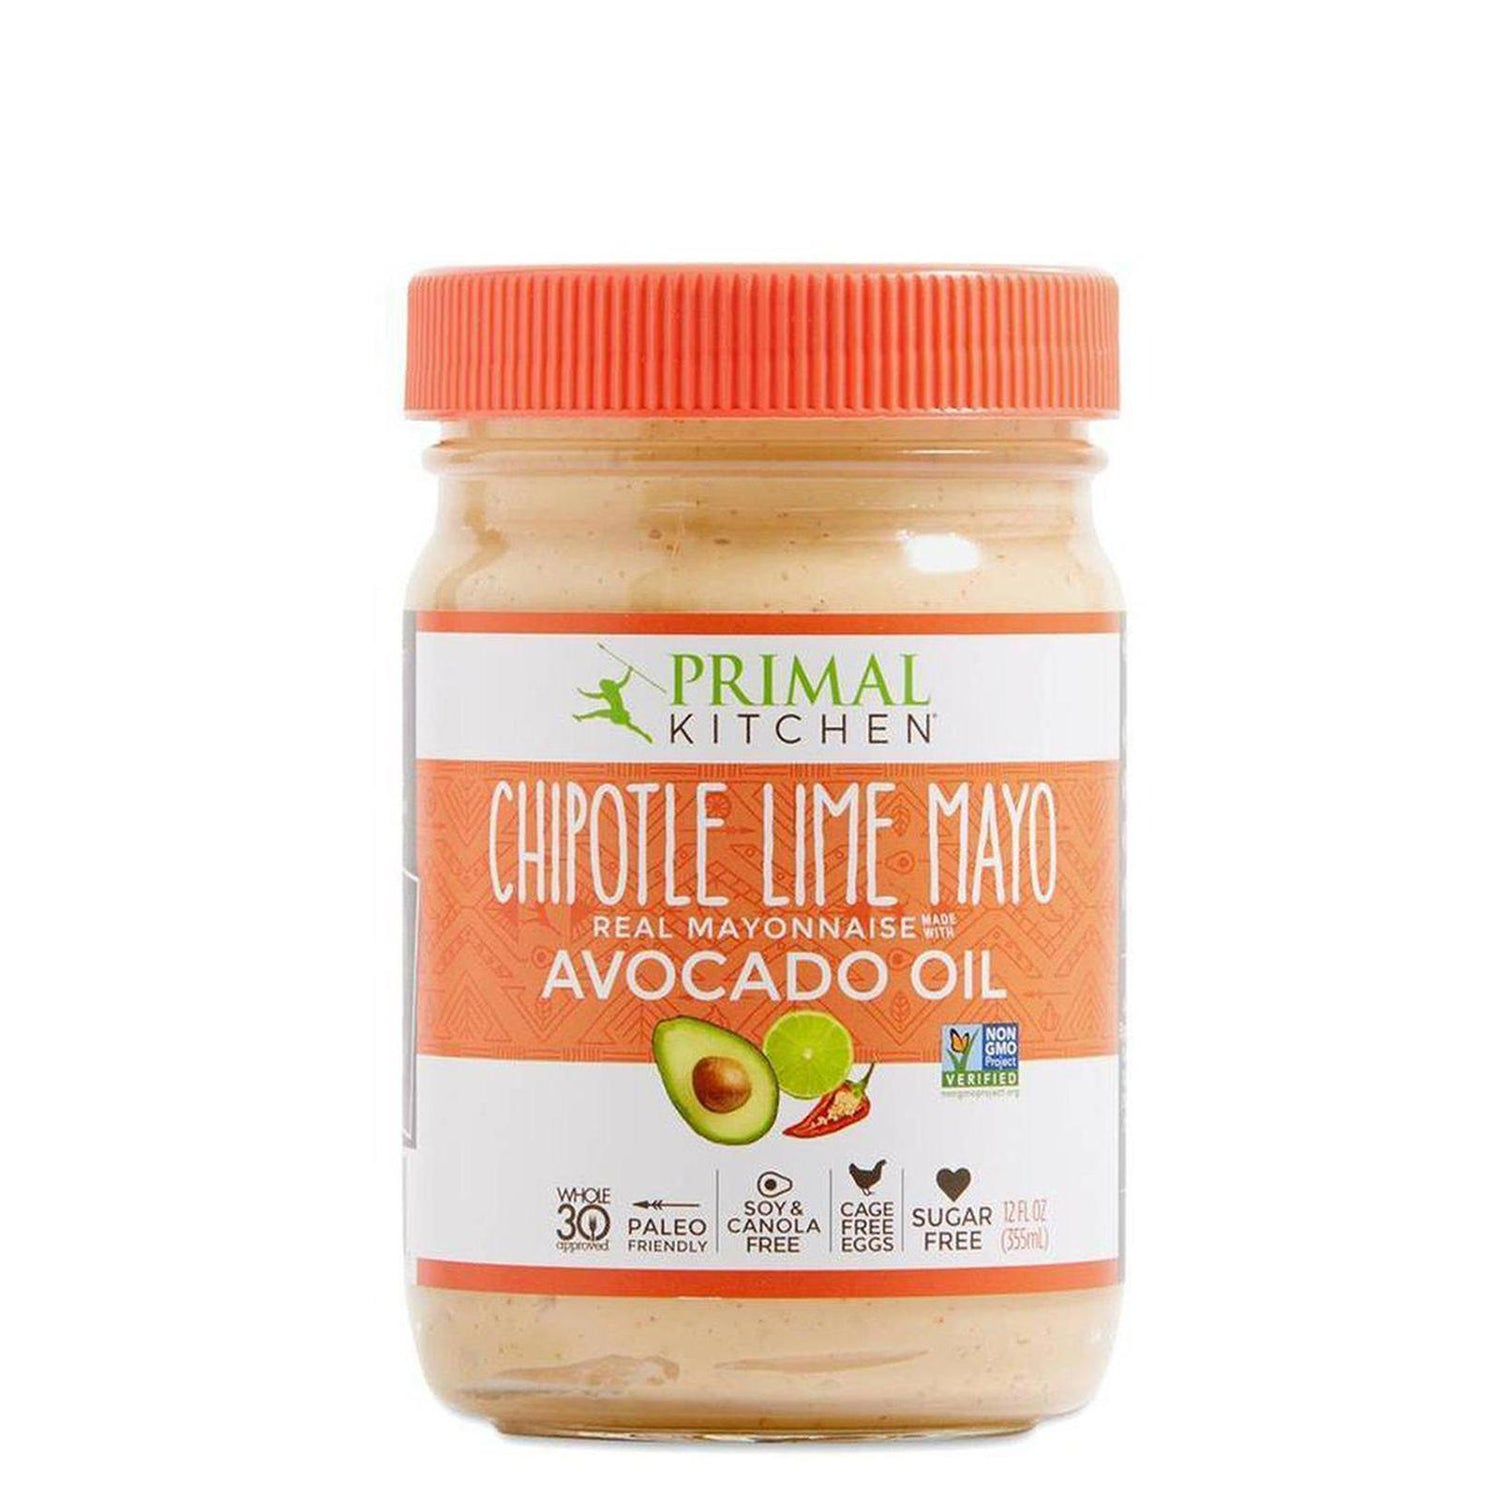 Primal Kitchen Mayonnaise With Avocado Oil Chipotle Lime Mayo 12oz